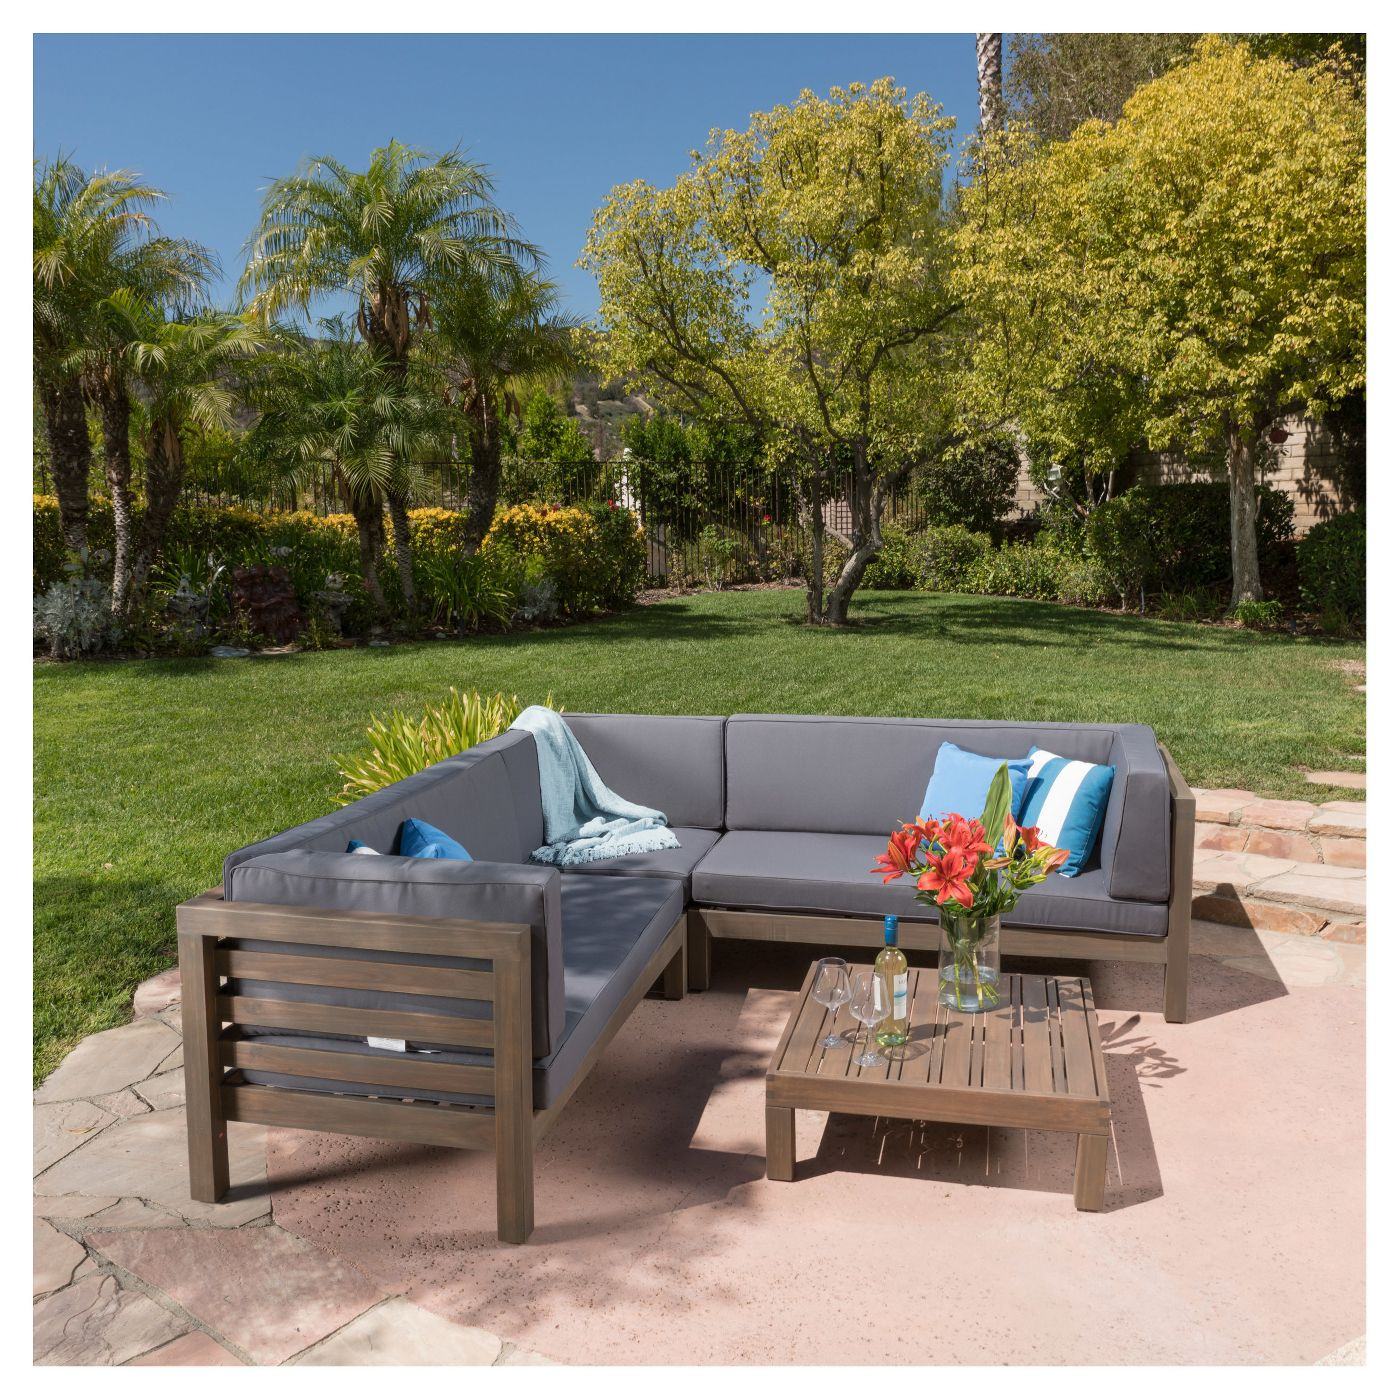 4-Pack Oana Acacia Wood Patio Sectional Chat Set